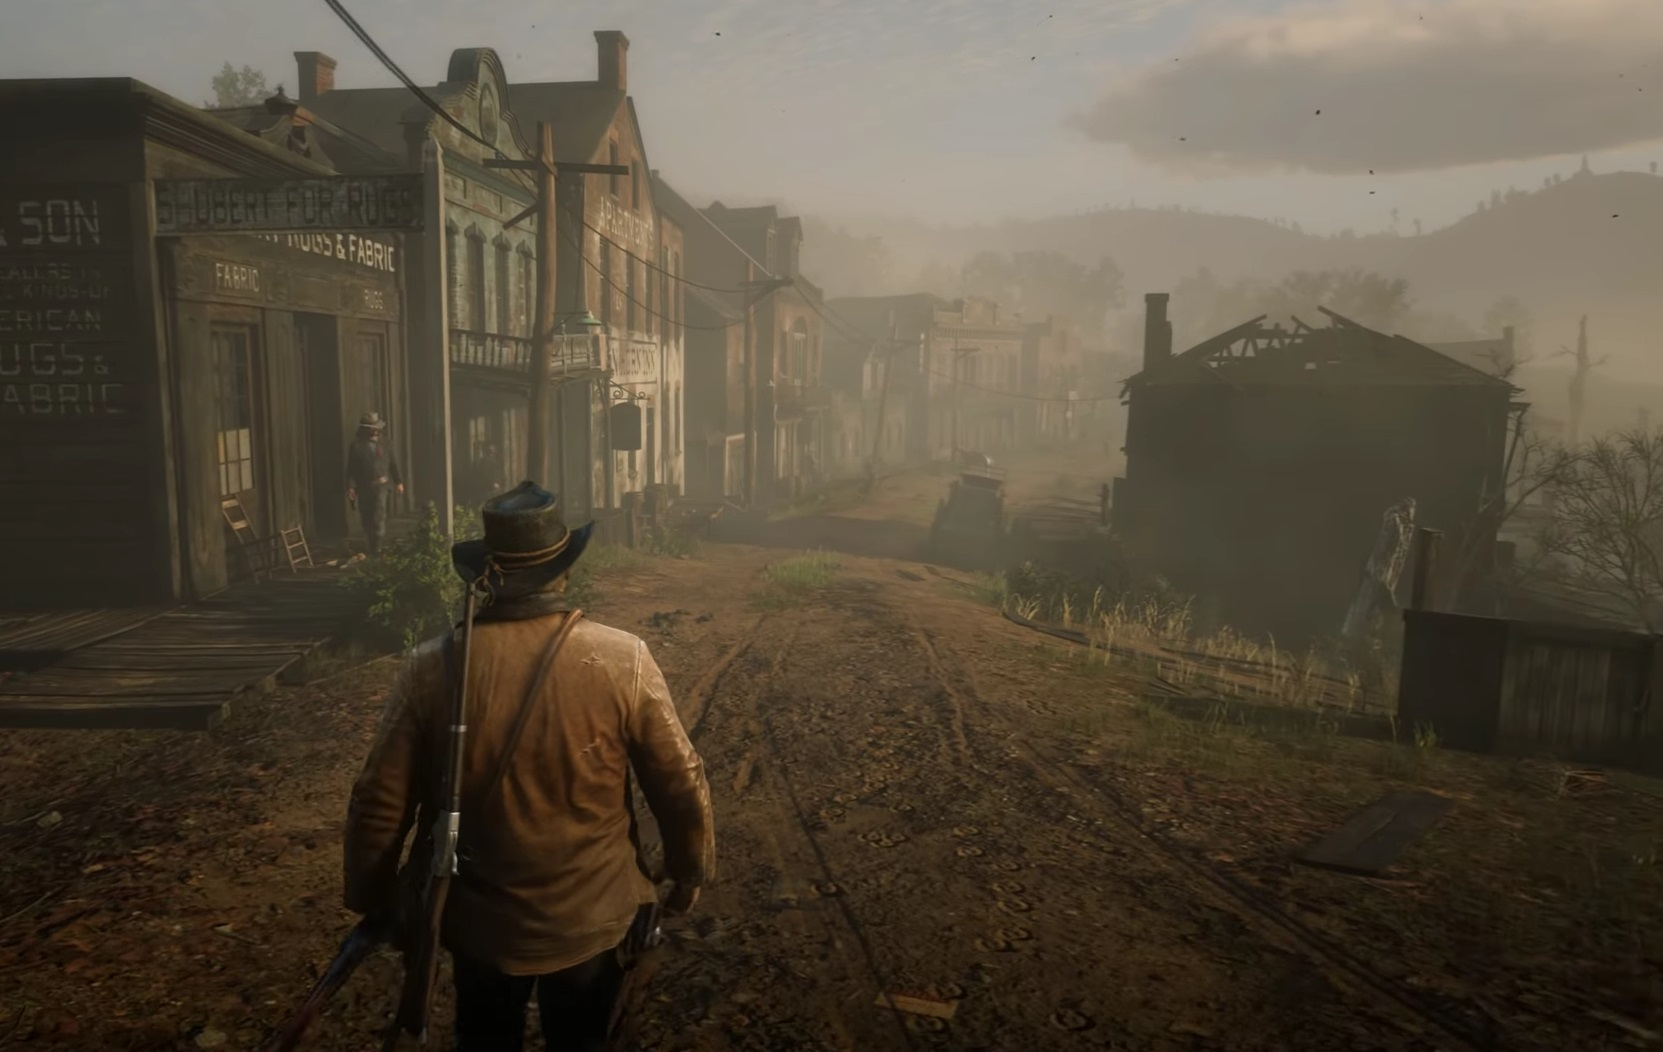 Red Dead Redemption 2 sees Rockstar raising the bar for realism in open world games